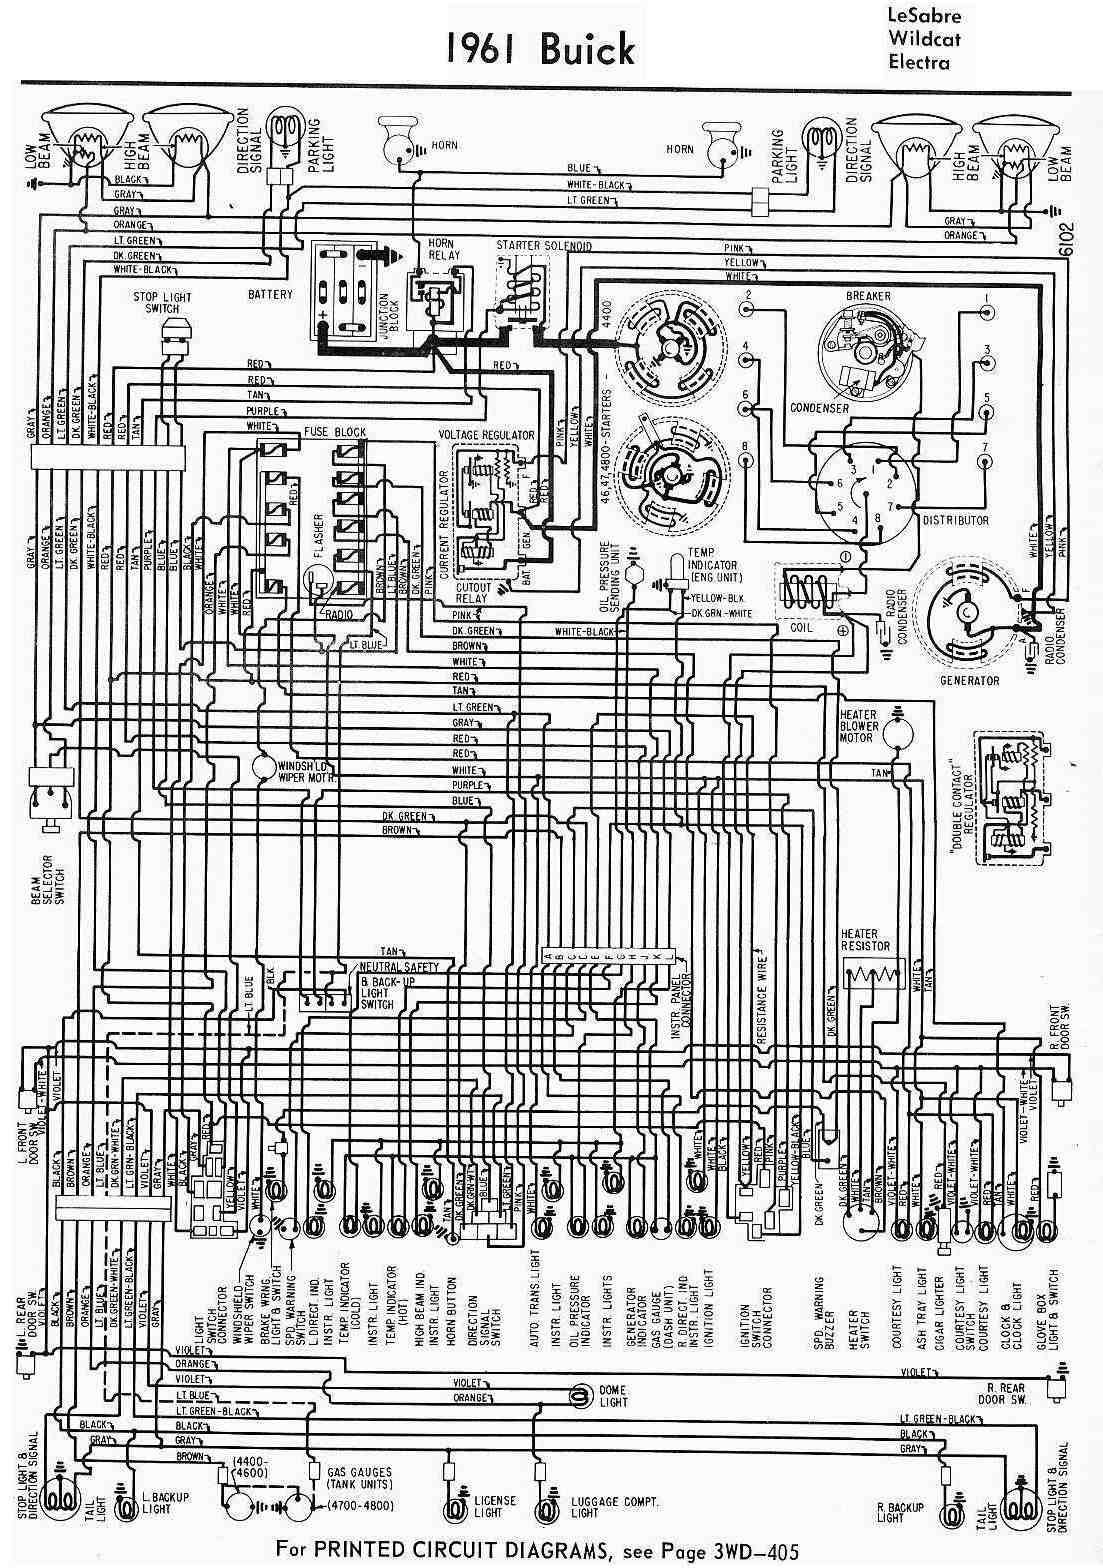 1948 Studebaker Wiring Diagram | Manual Repair With Engine ... Chevy C10,  Diagram